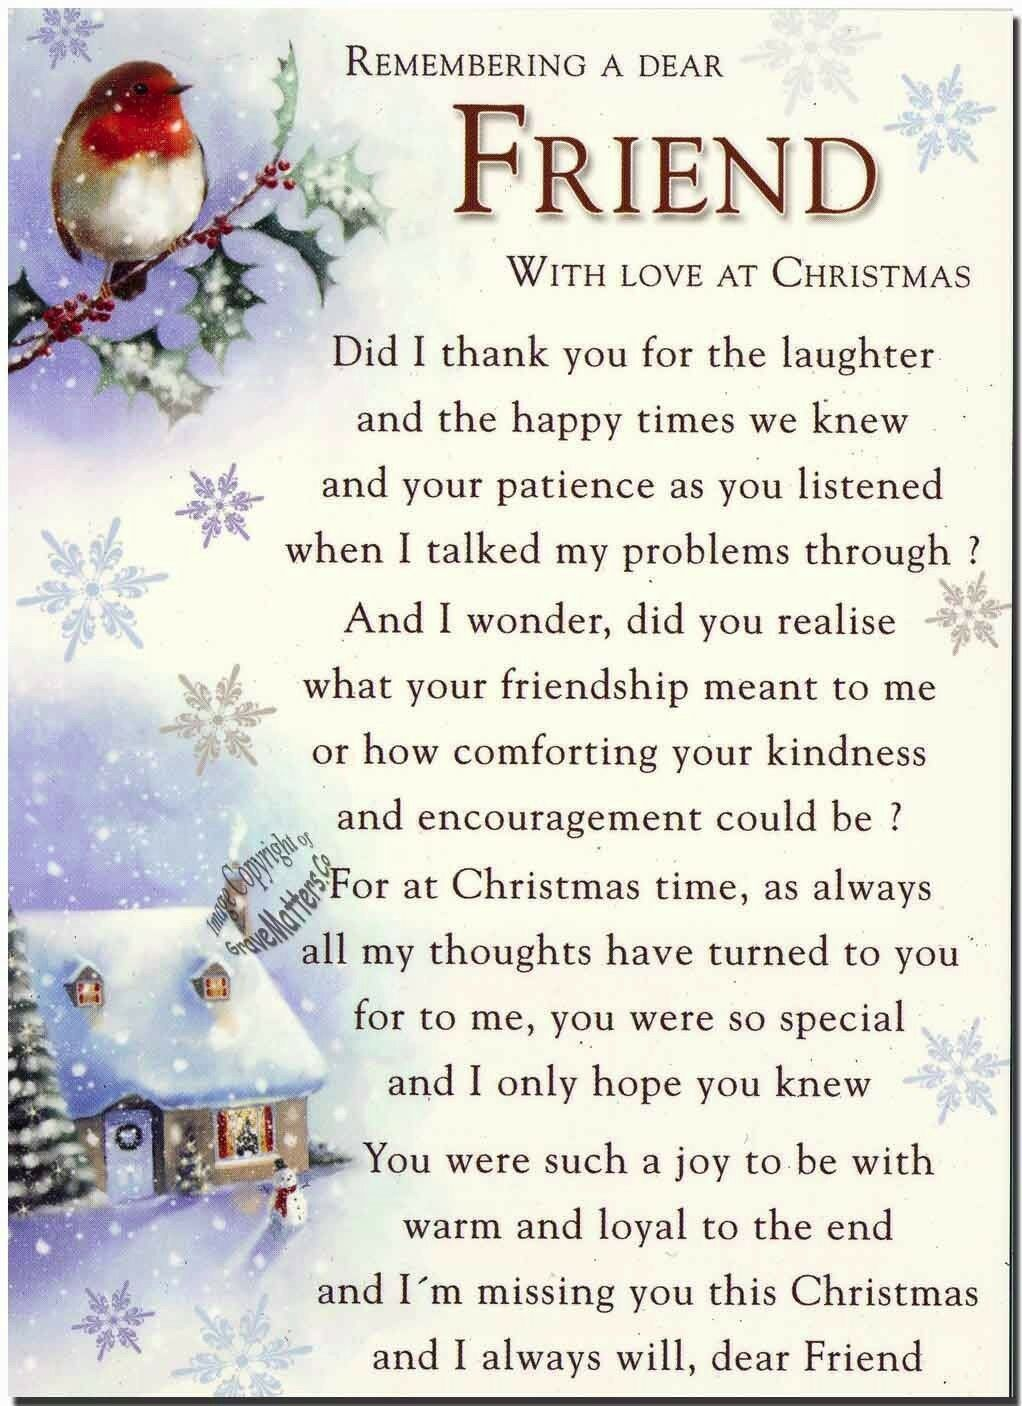 Christmas grave card special friend free holder c115 memoriam christmas grave memoriam card remembering a special friend with love at christmas c1 15 kristyandbryce Images